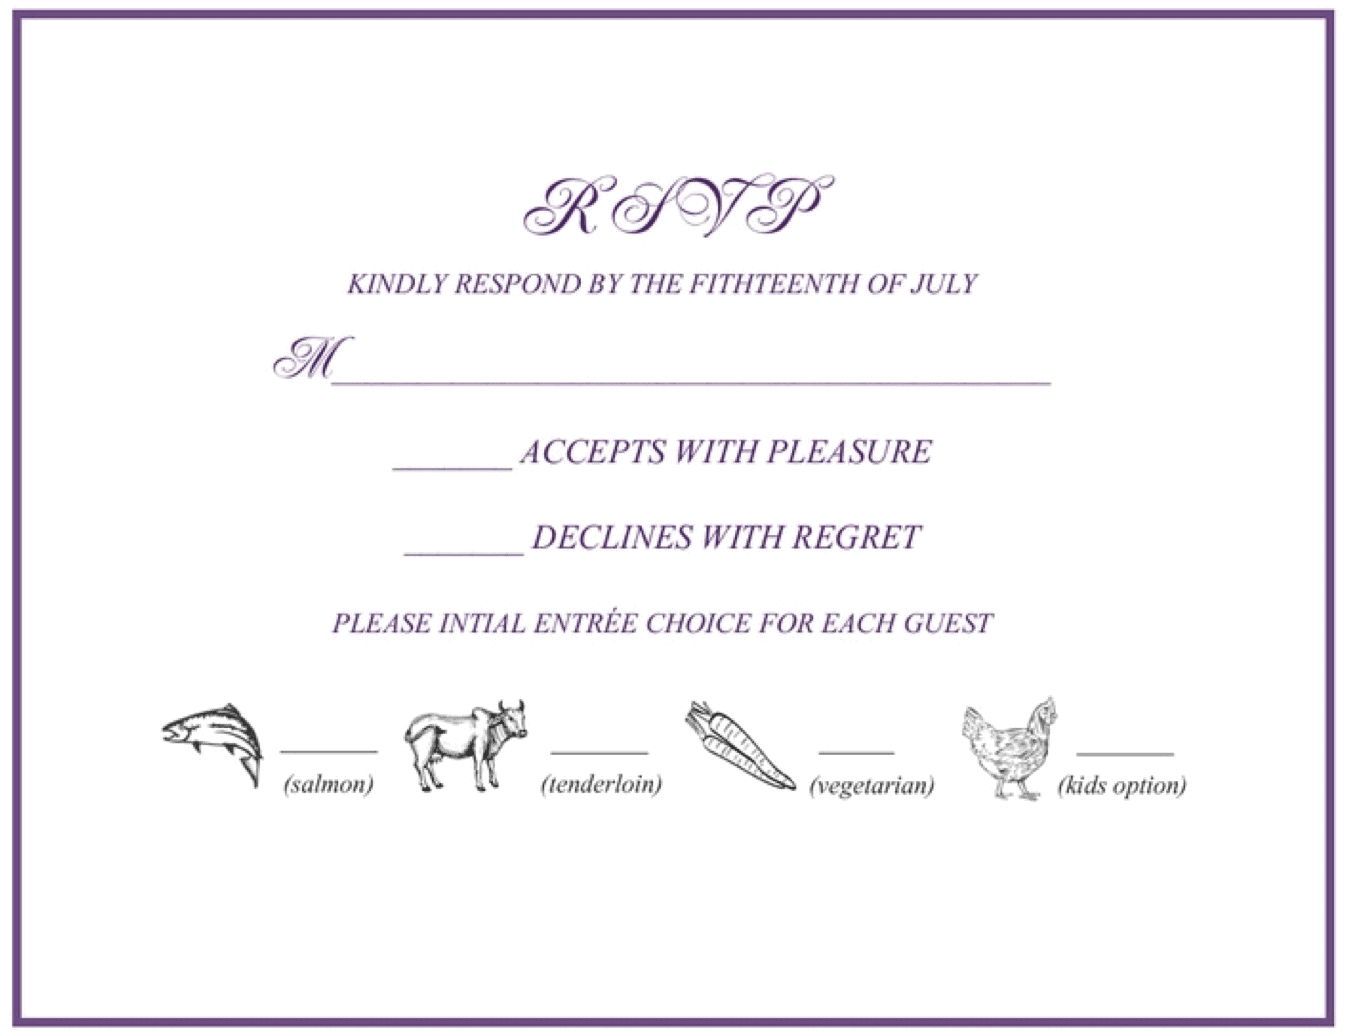 rsvp template for event - rsvp 101 how to rsvp to a wedding or event rsvpify